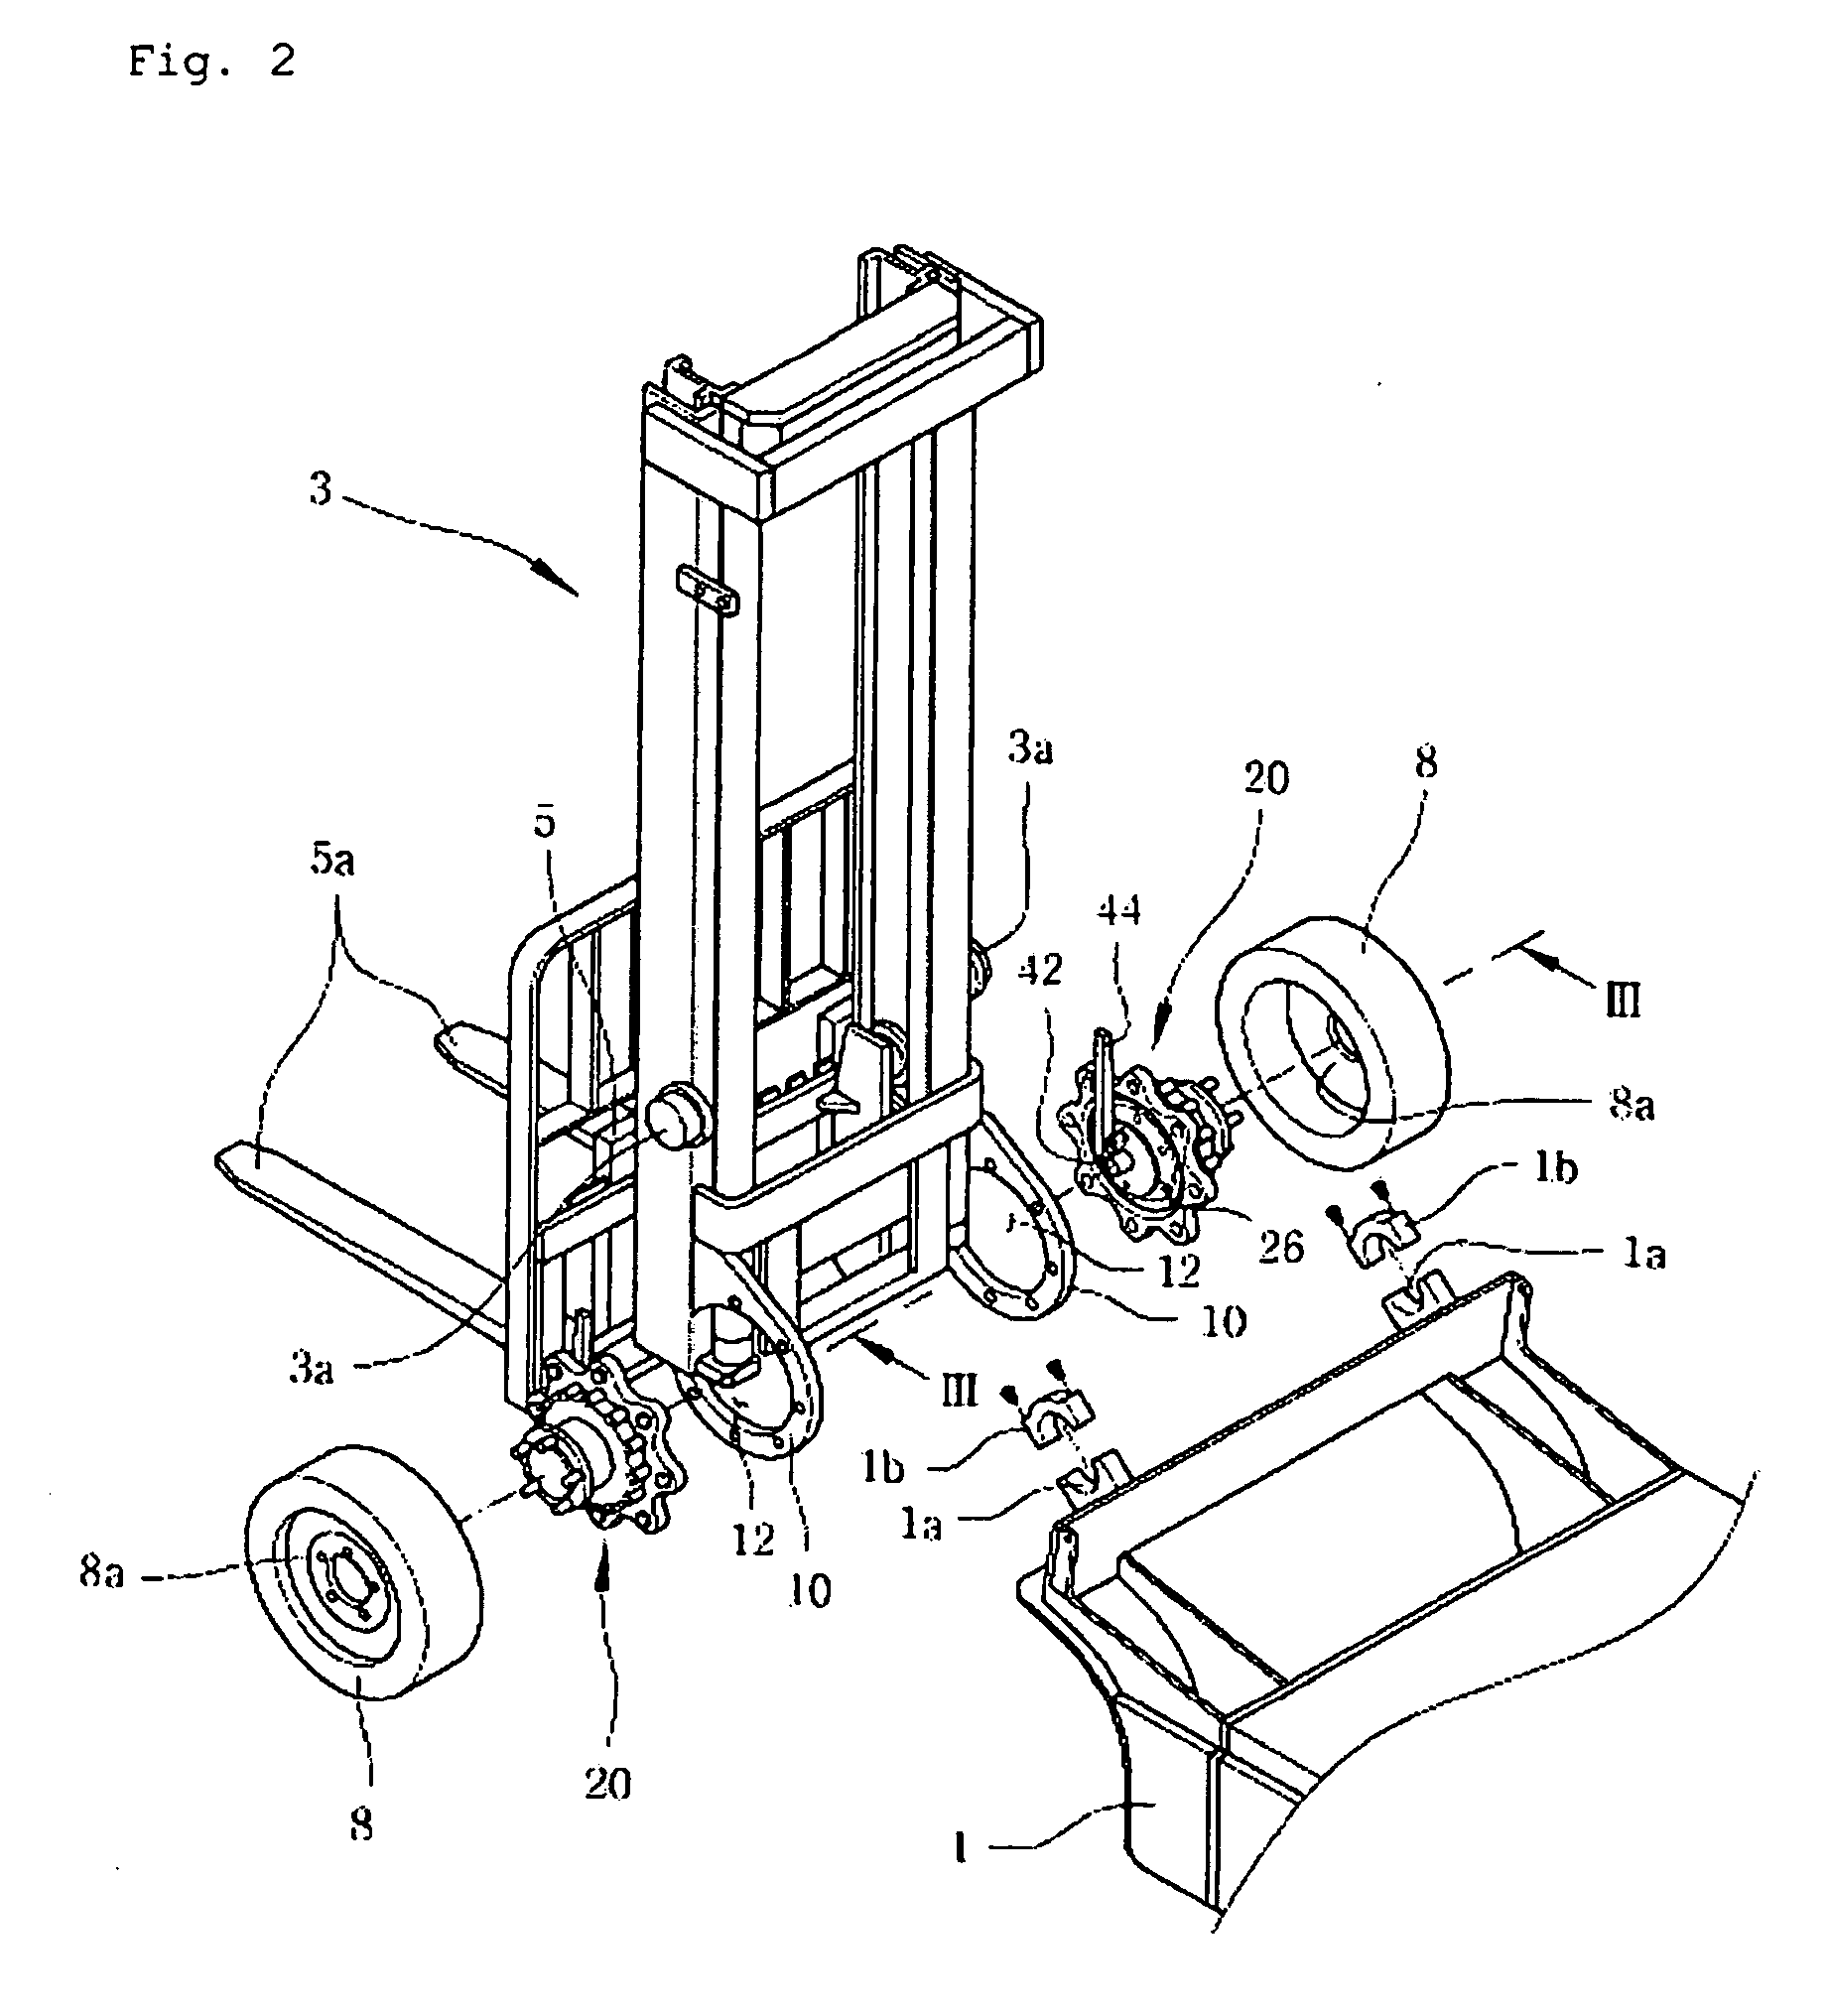 clark forklift drawings related keywords suggestions clark Toyota Van Wiring Diagram patent ep1803621b1 front wheel brake device for